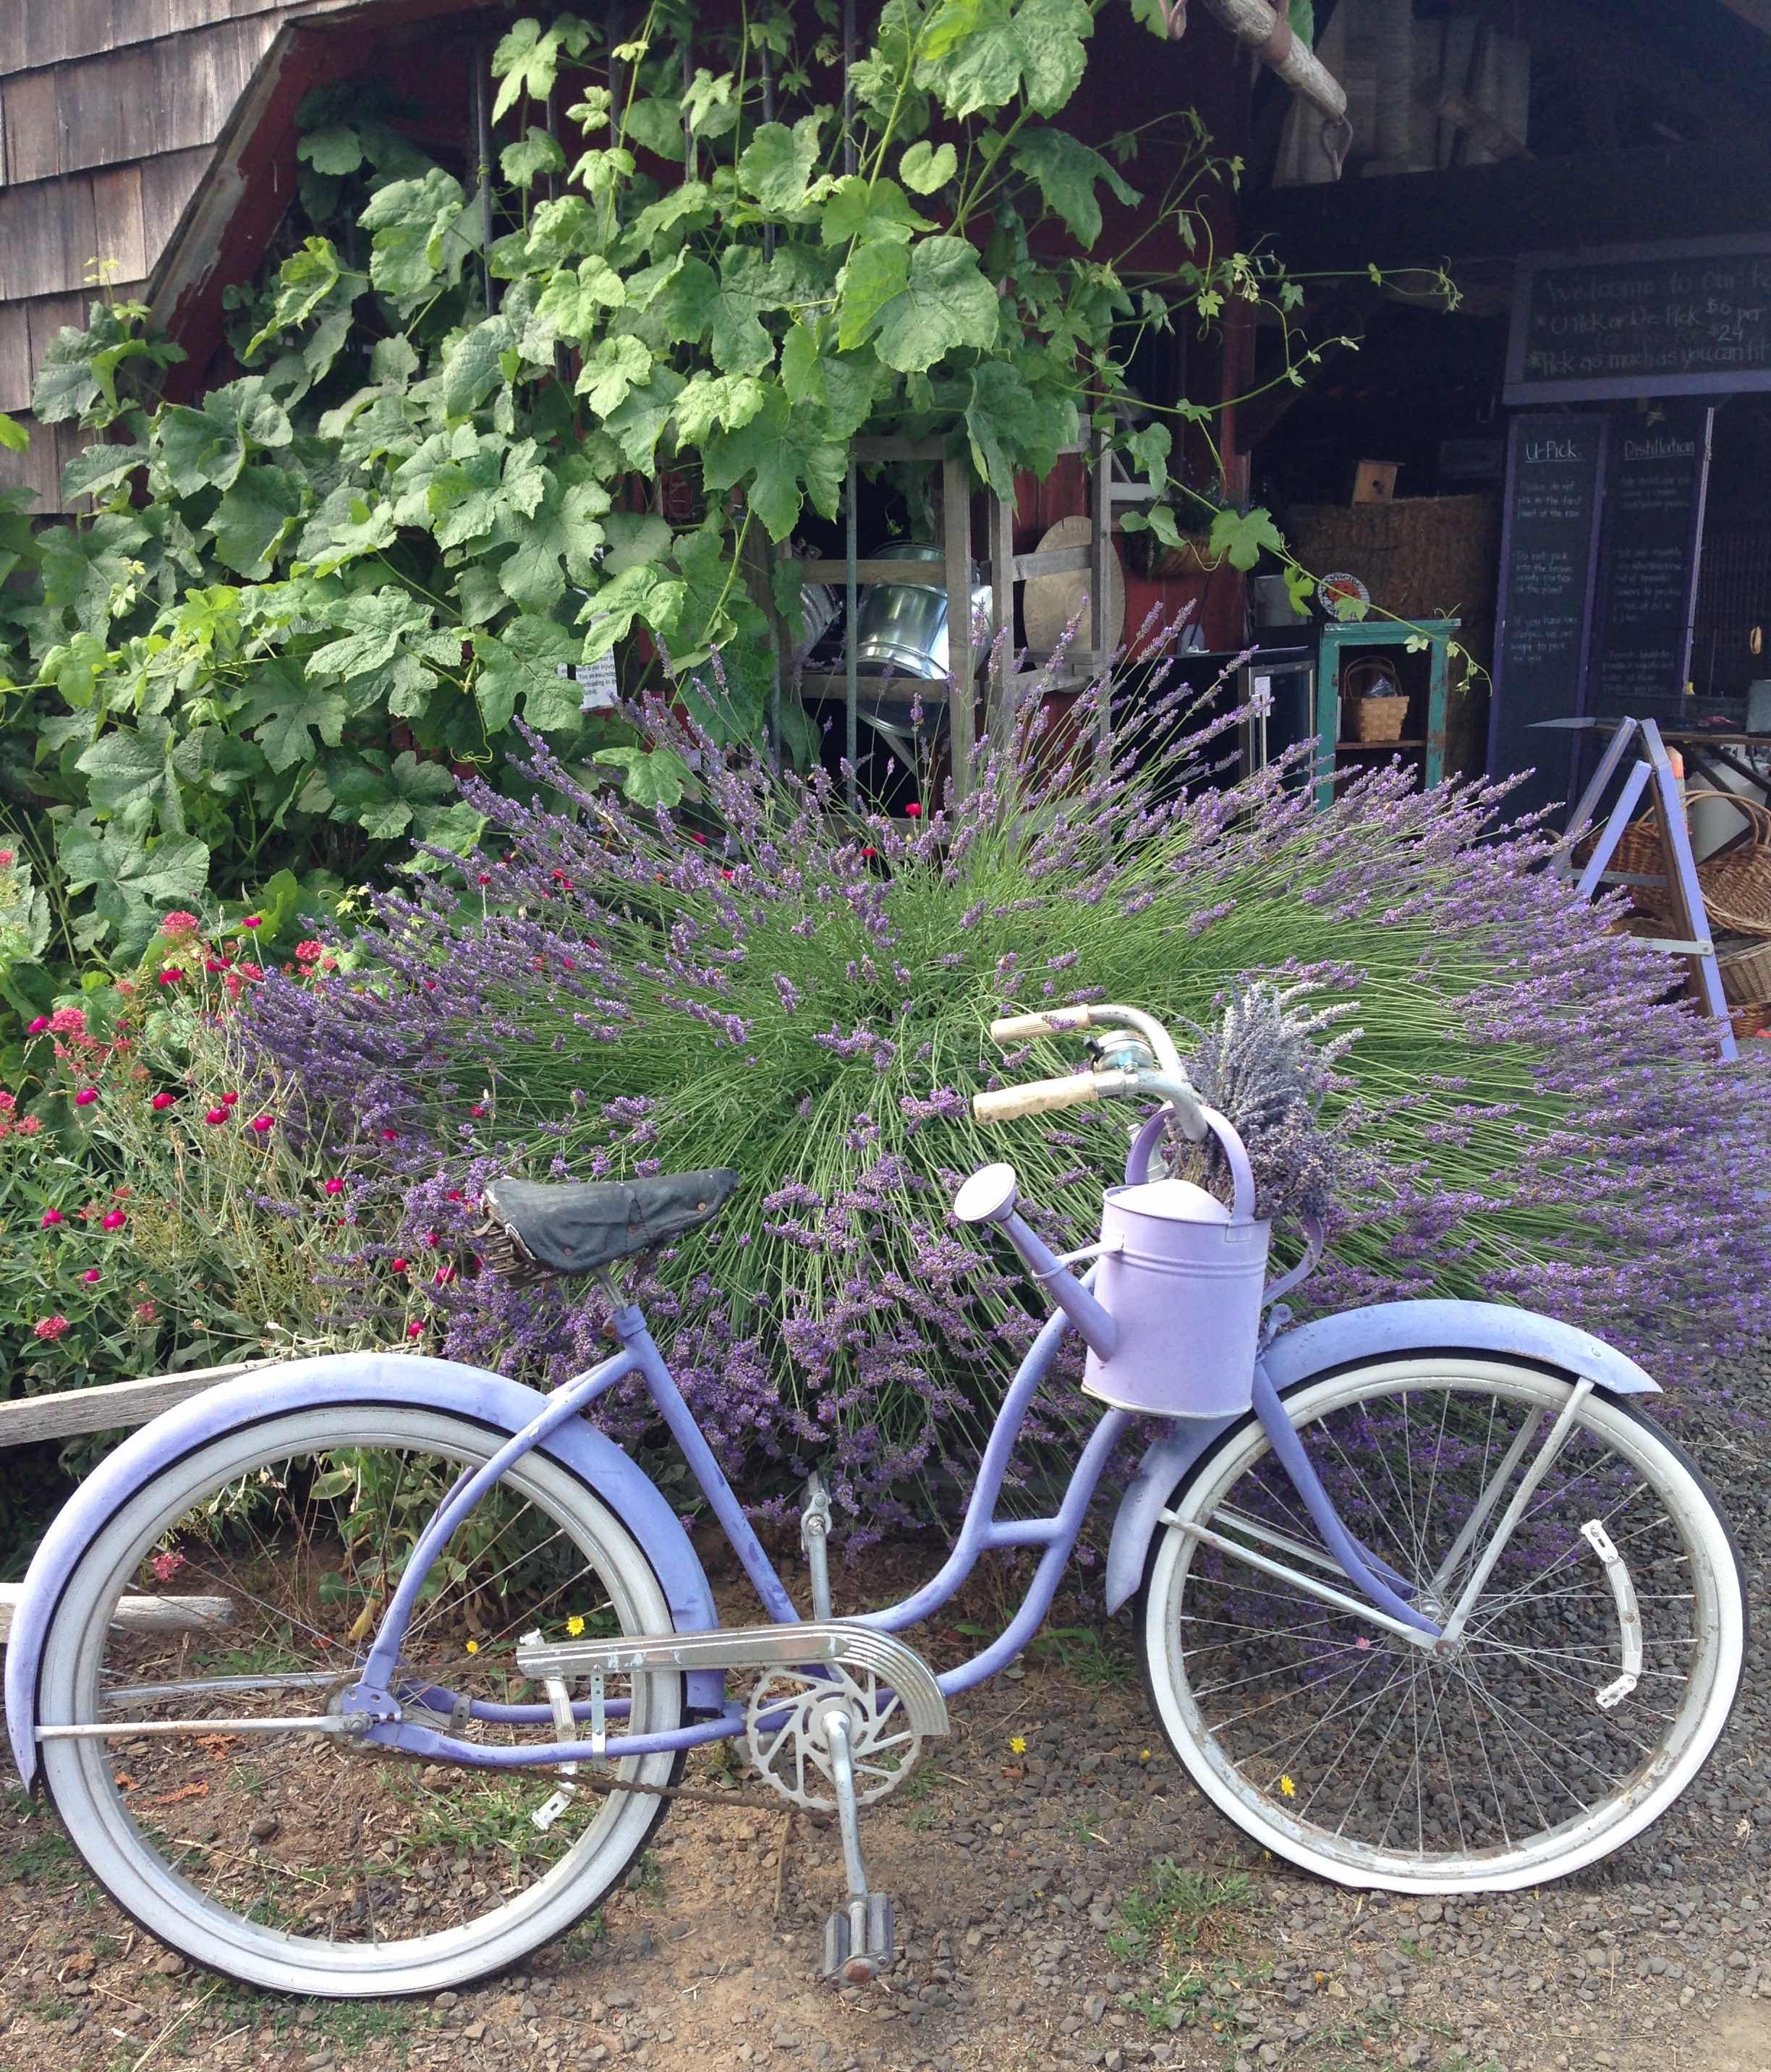 lavender bike and lavender